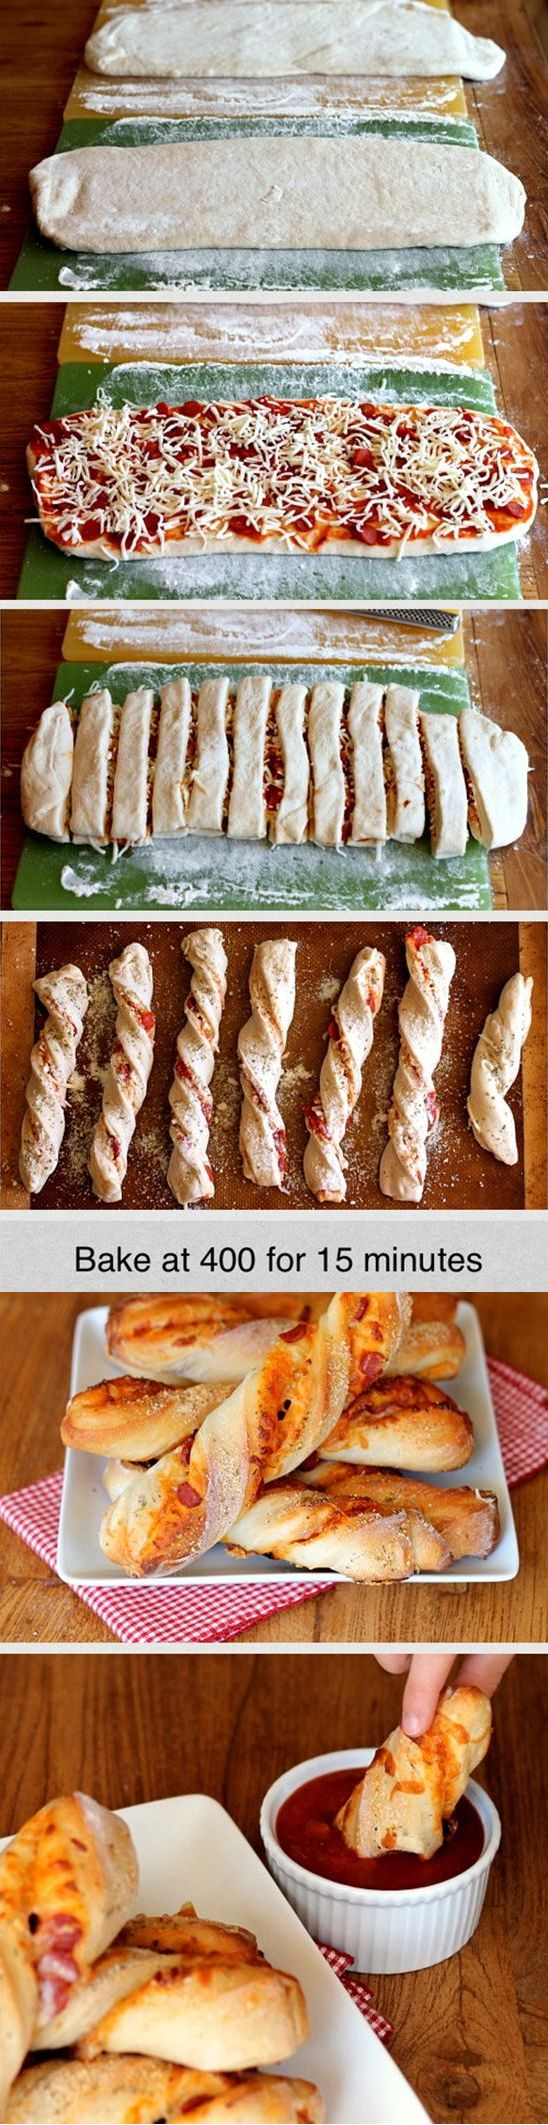 Dippable Pizza Sticks -